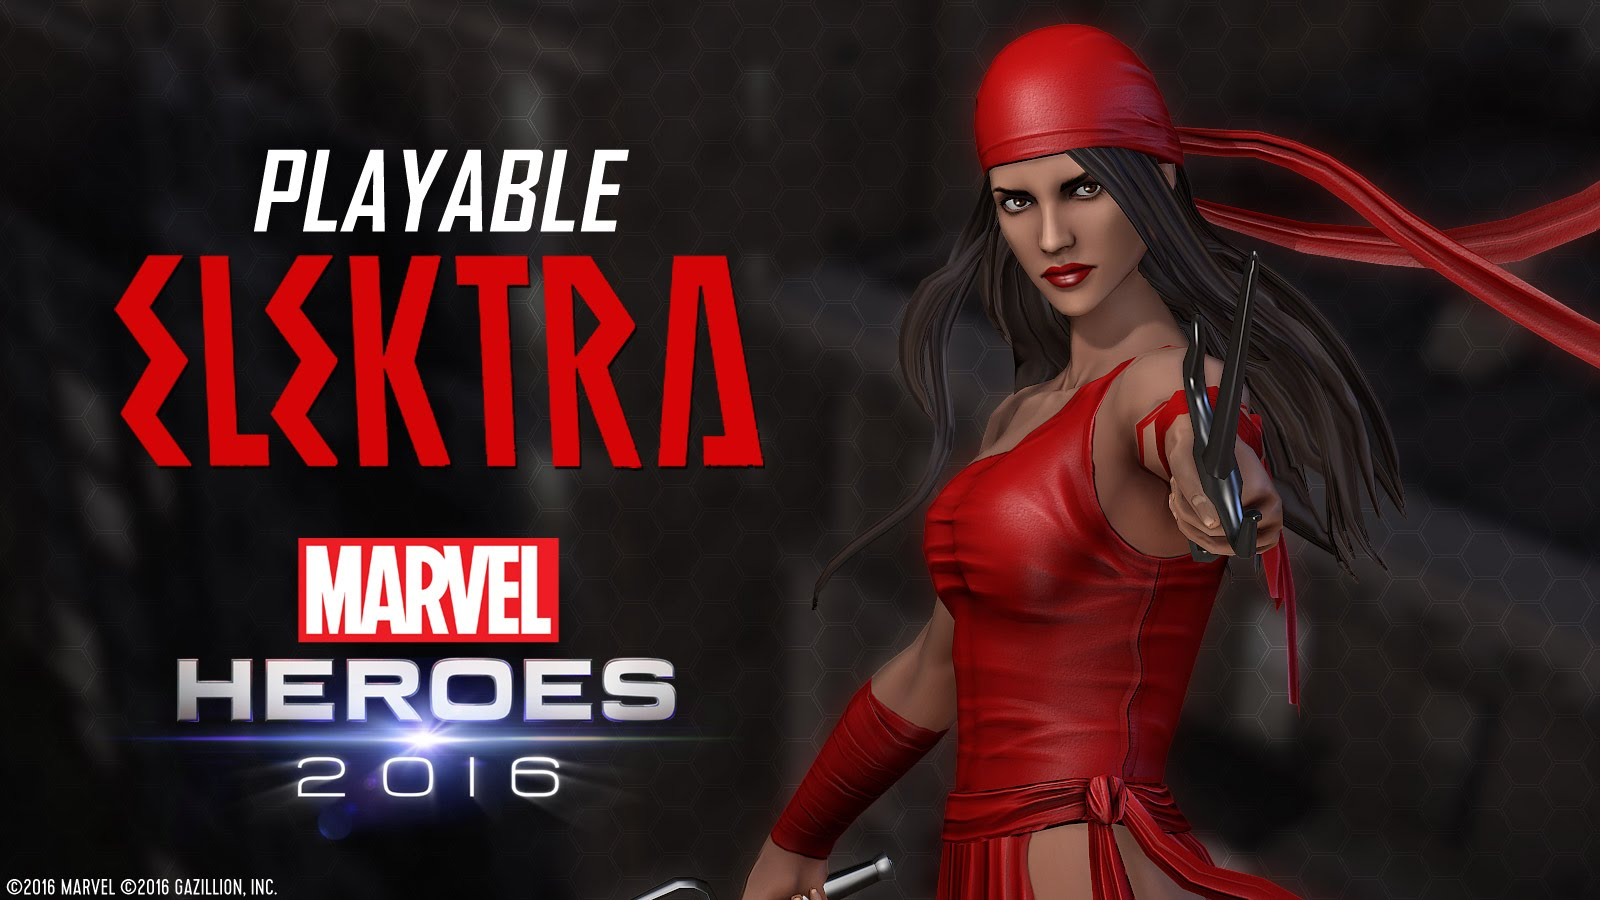 Elektra joins Marvel Heroes 2016!